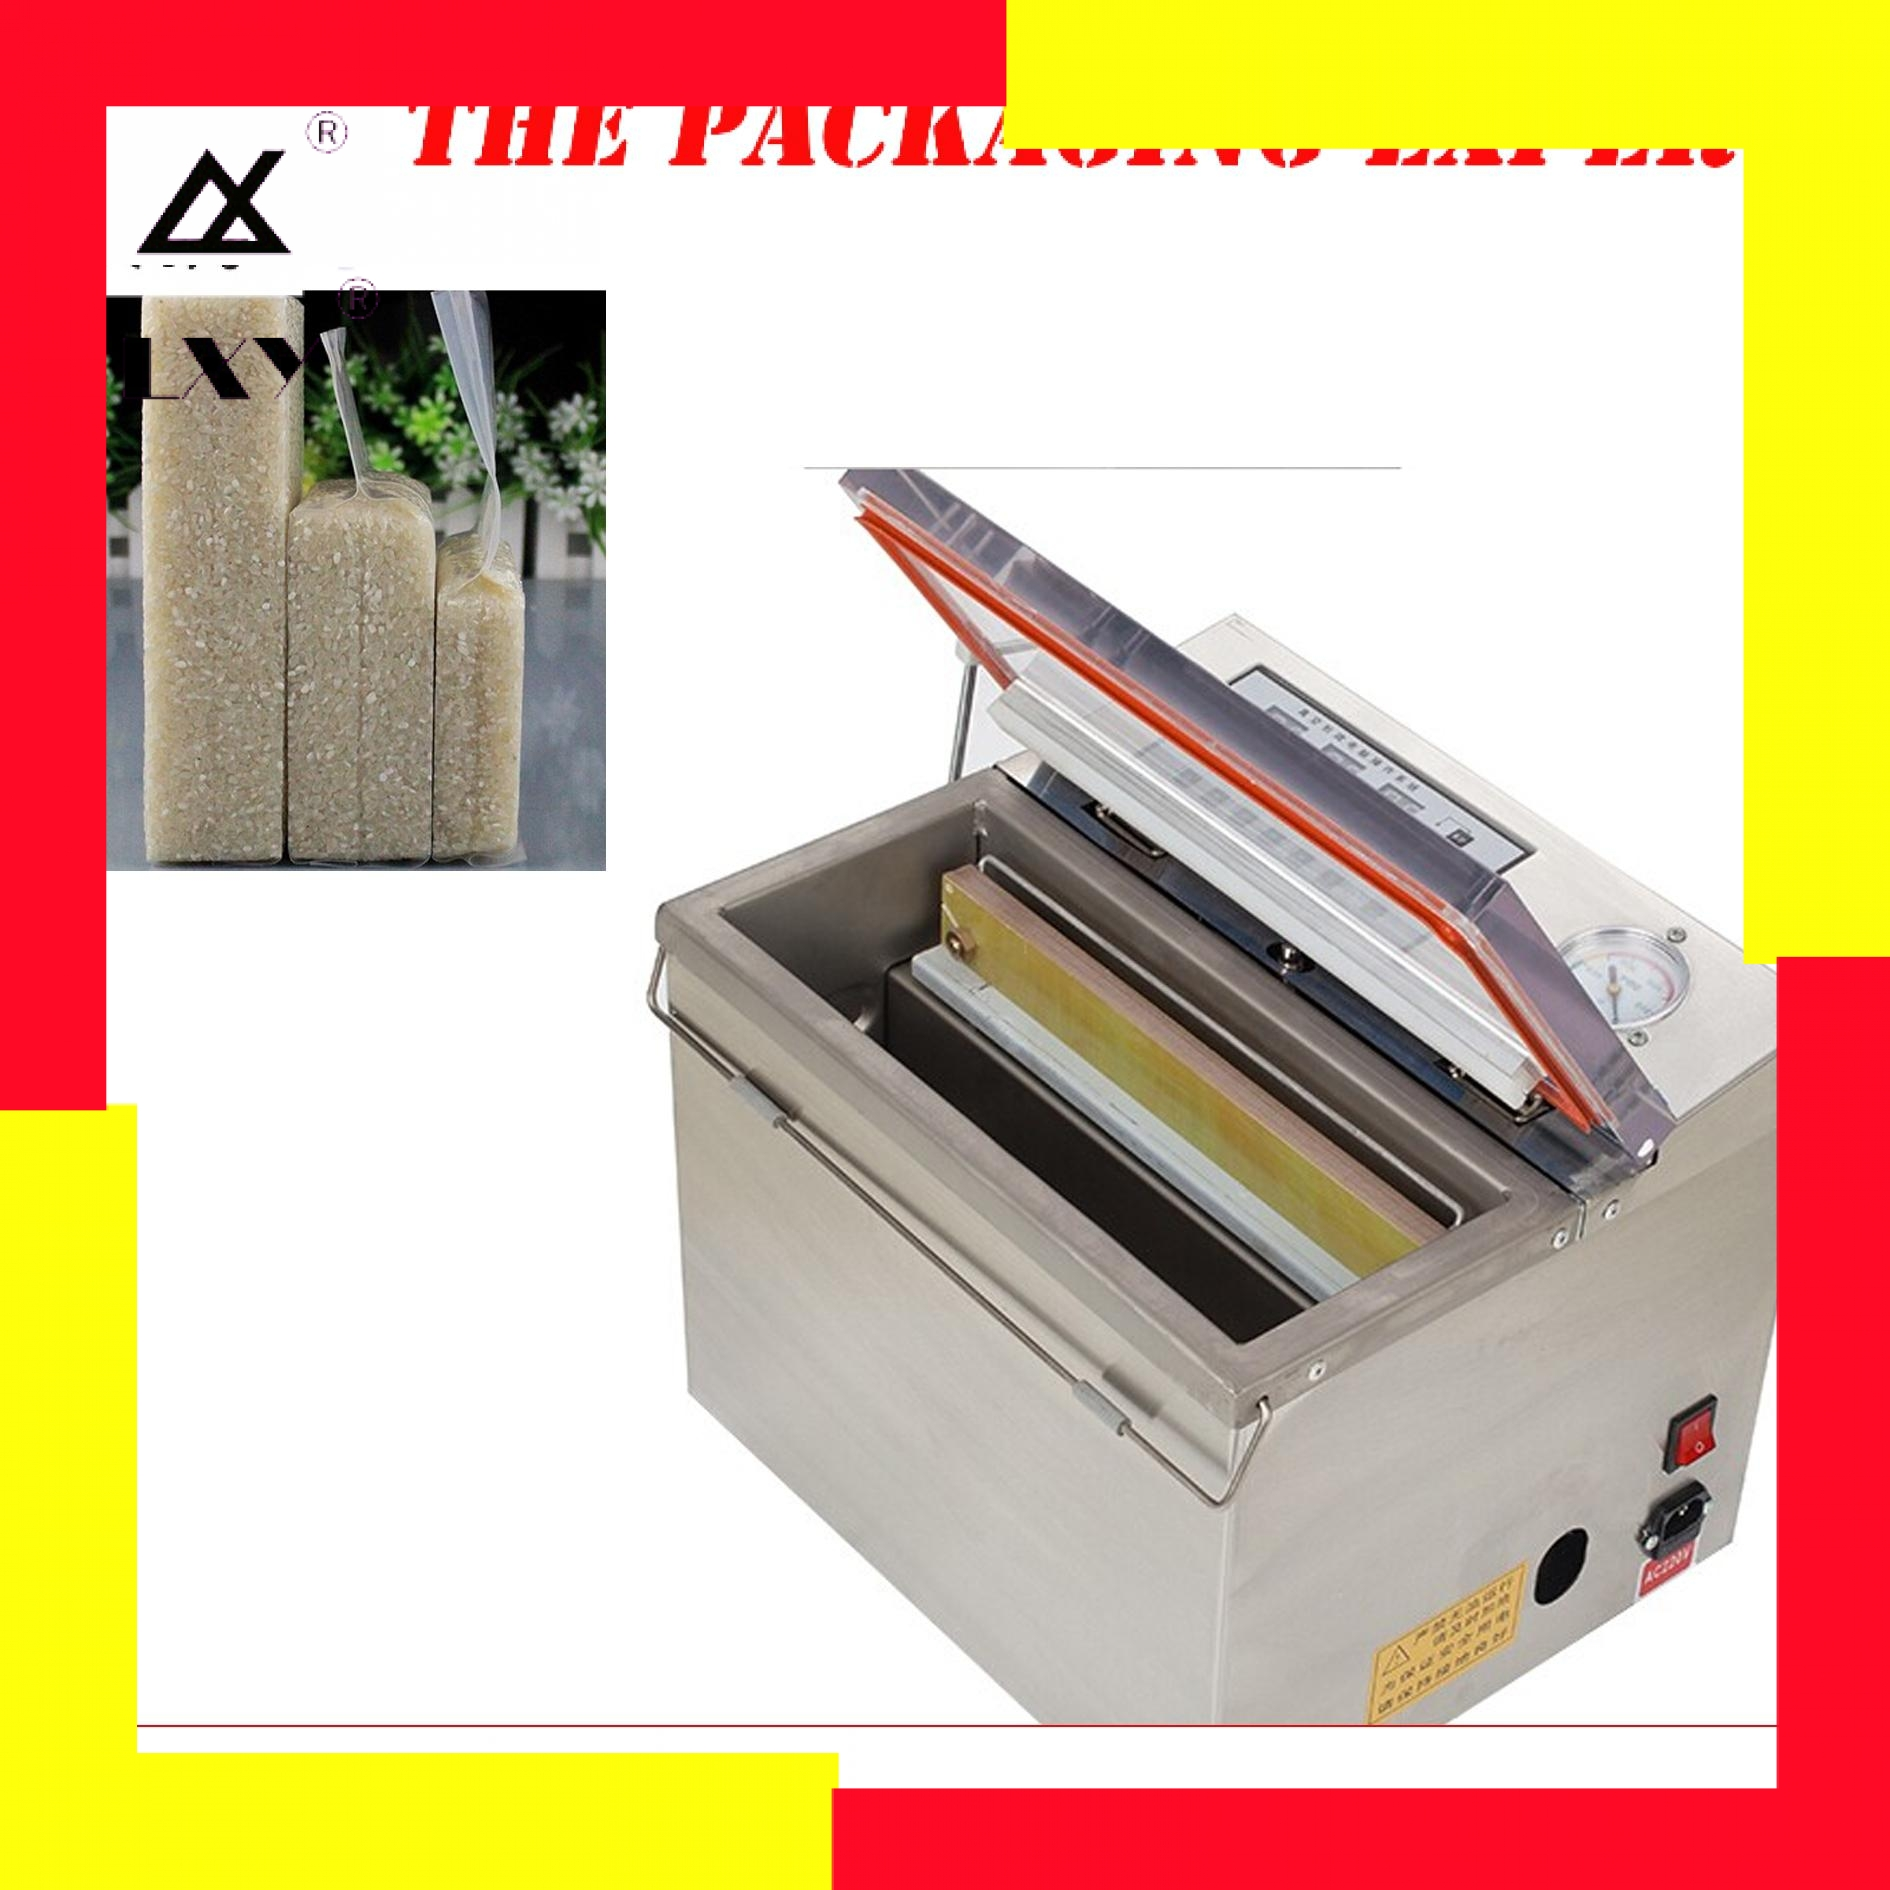 Special For Bag Rice Tea Vacuum Sealer Vaccum Packing Machine Sealing Packaging With Quadrate Area Sucking Air Pack Seal Device